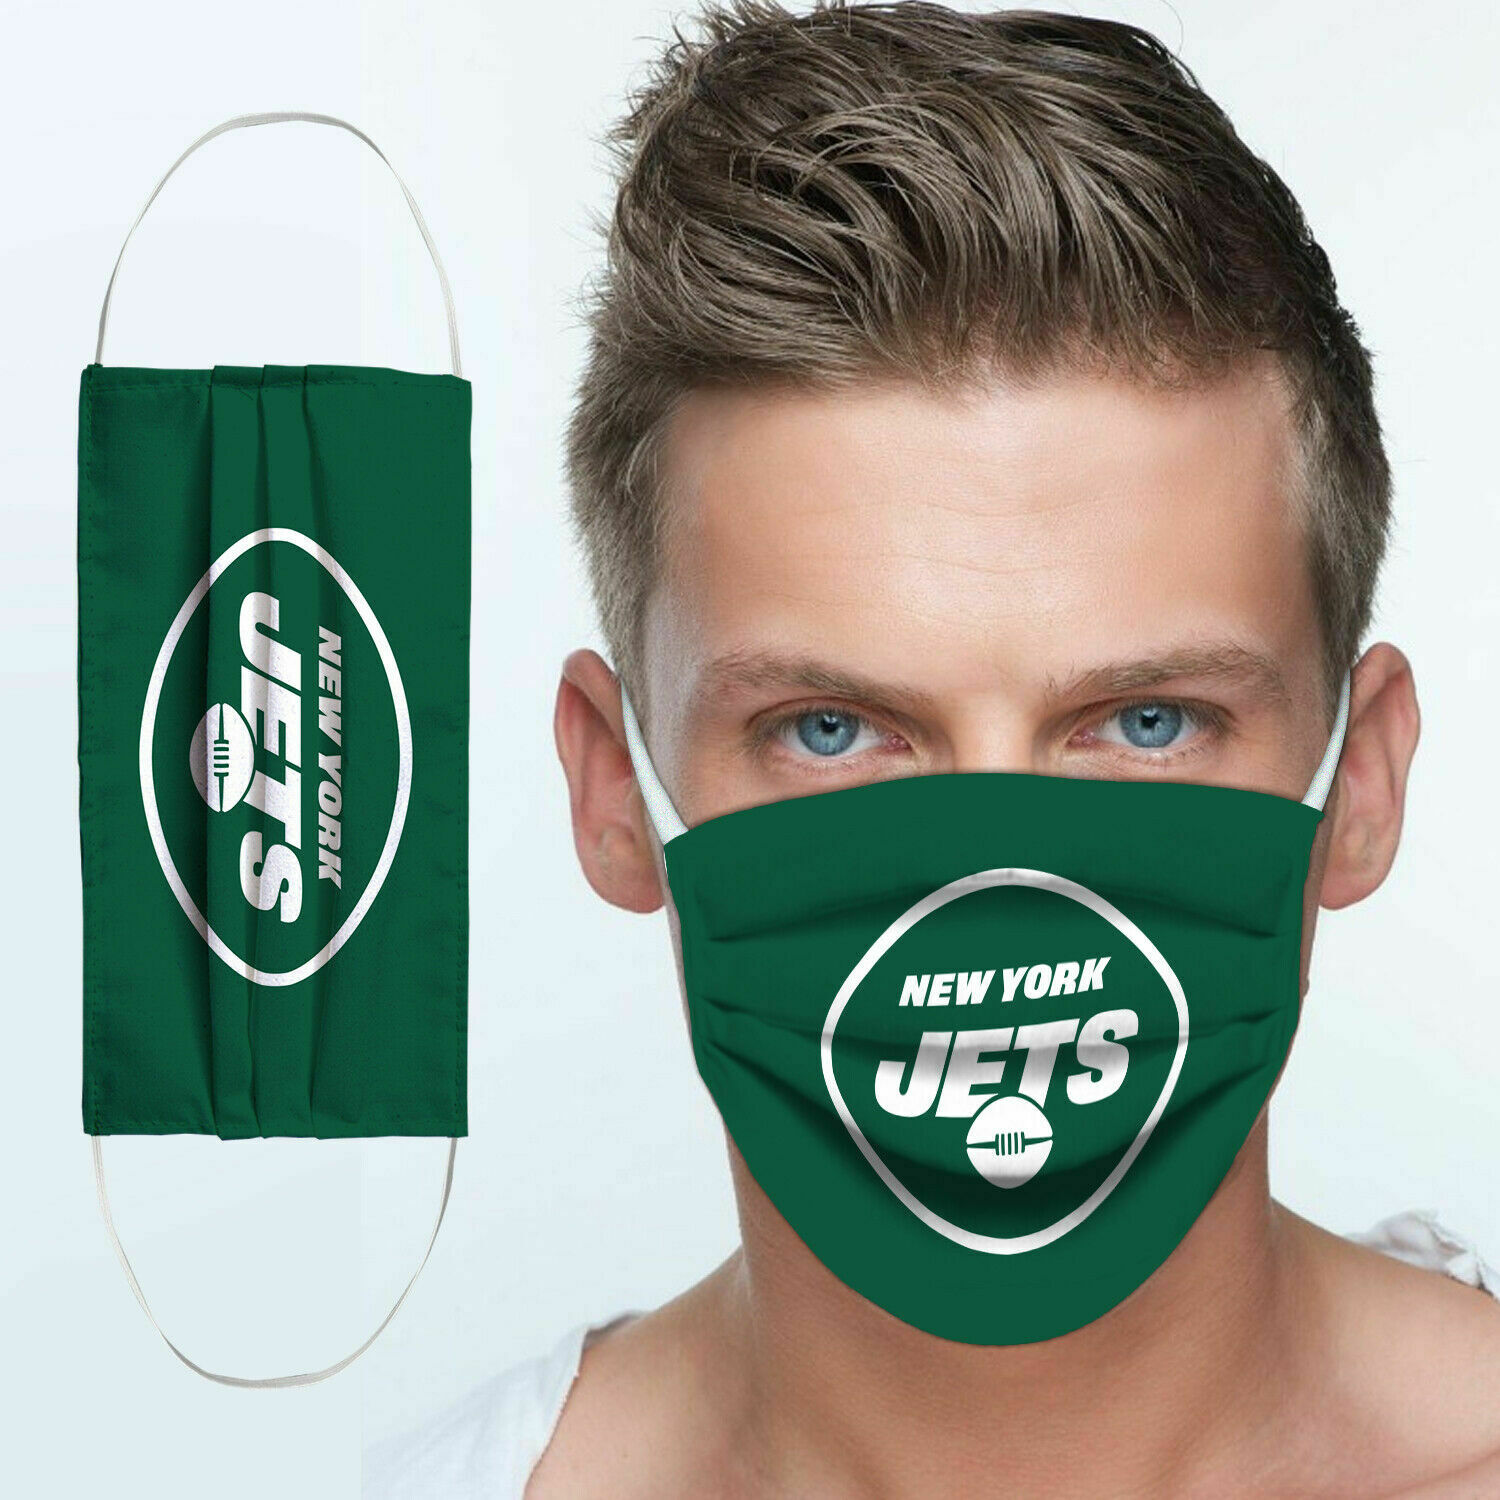 National football league new york jets team cotton face mask 3